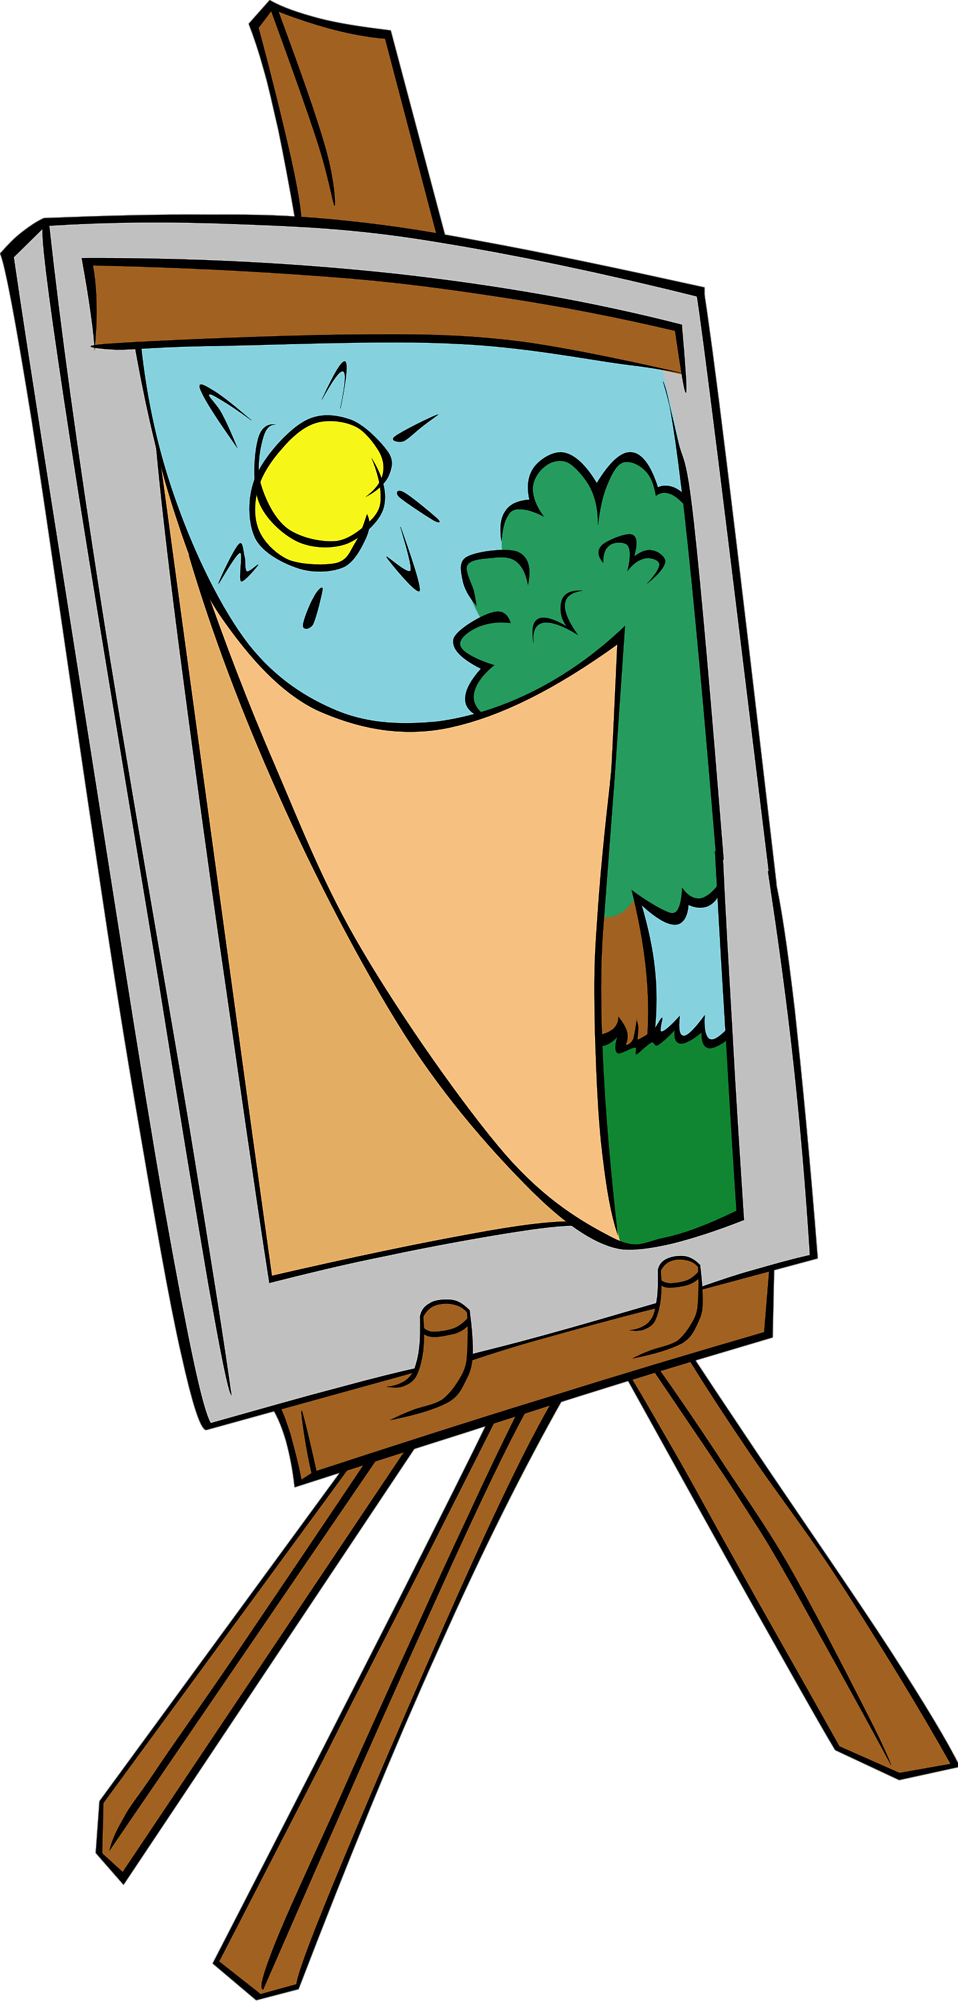 House painter clipart free picture Painting | Free Stock Photo | Illustration of a painting on an easel ... picture